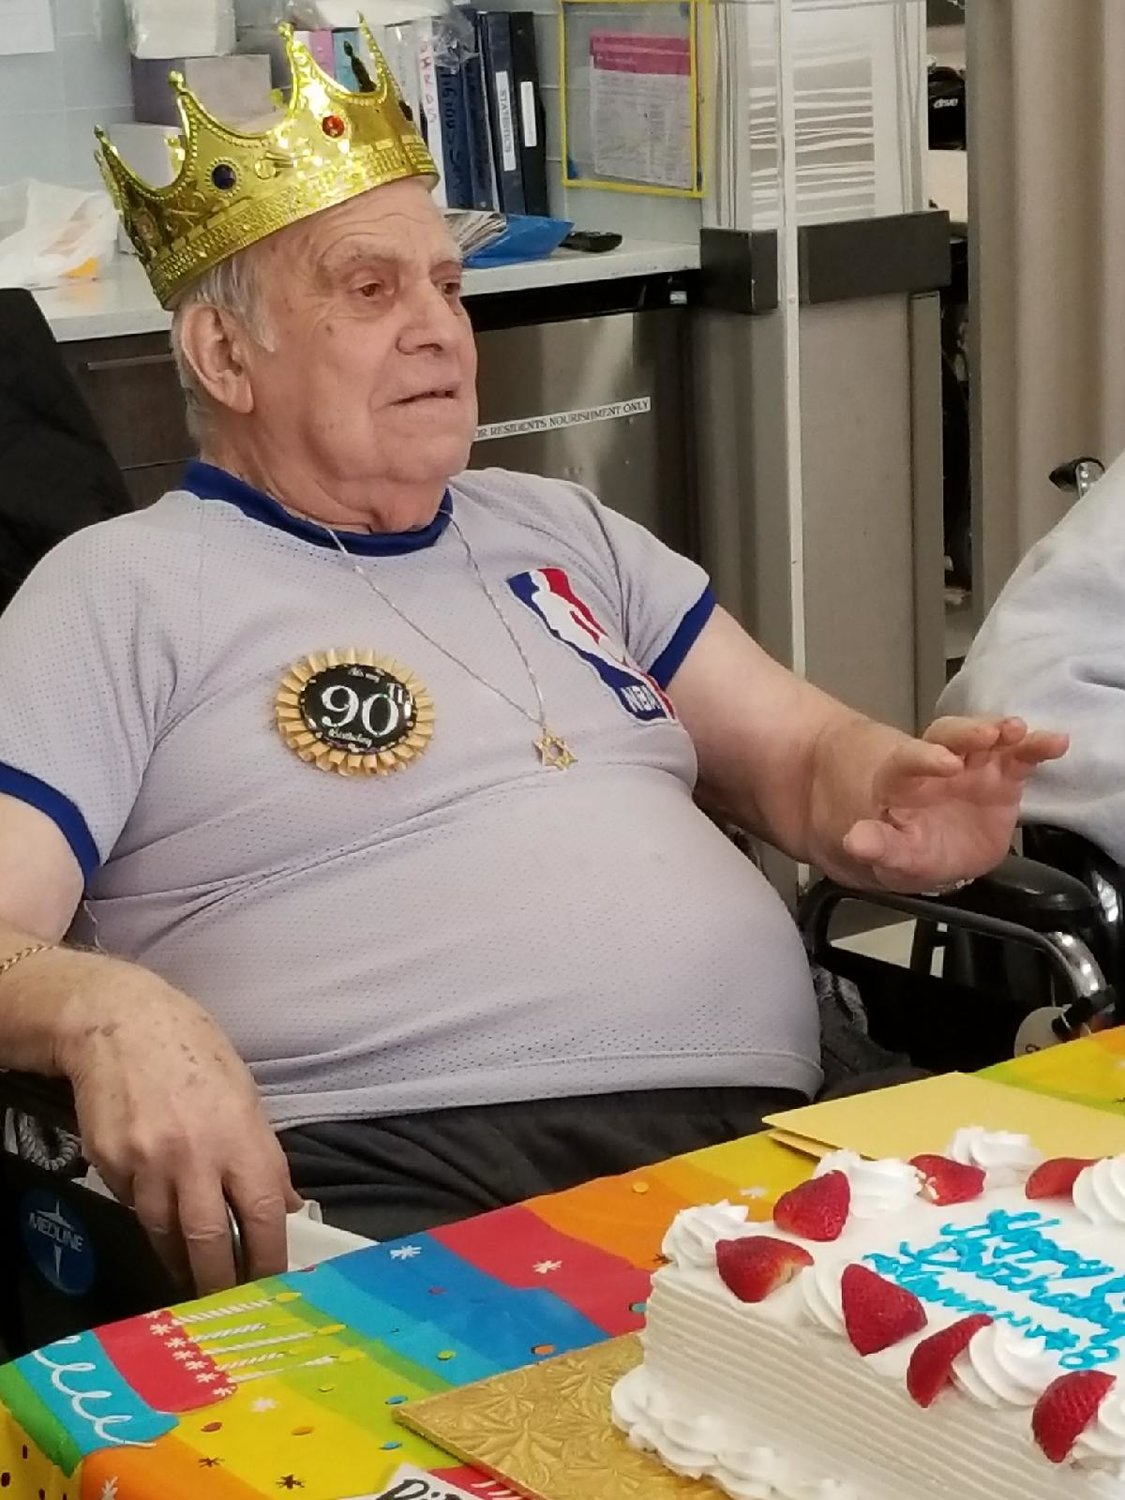 Hall of Fame NBA referee Manny Sokolofsky celebrated his 90th birthday at the Oceanside Care Center last month.